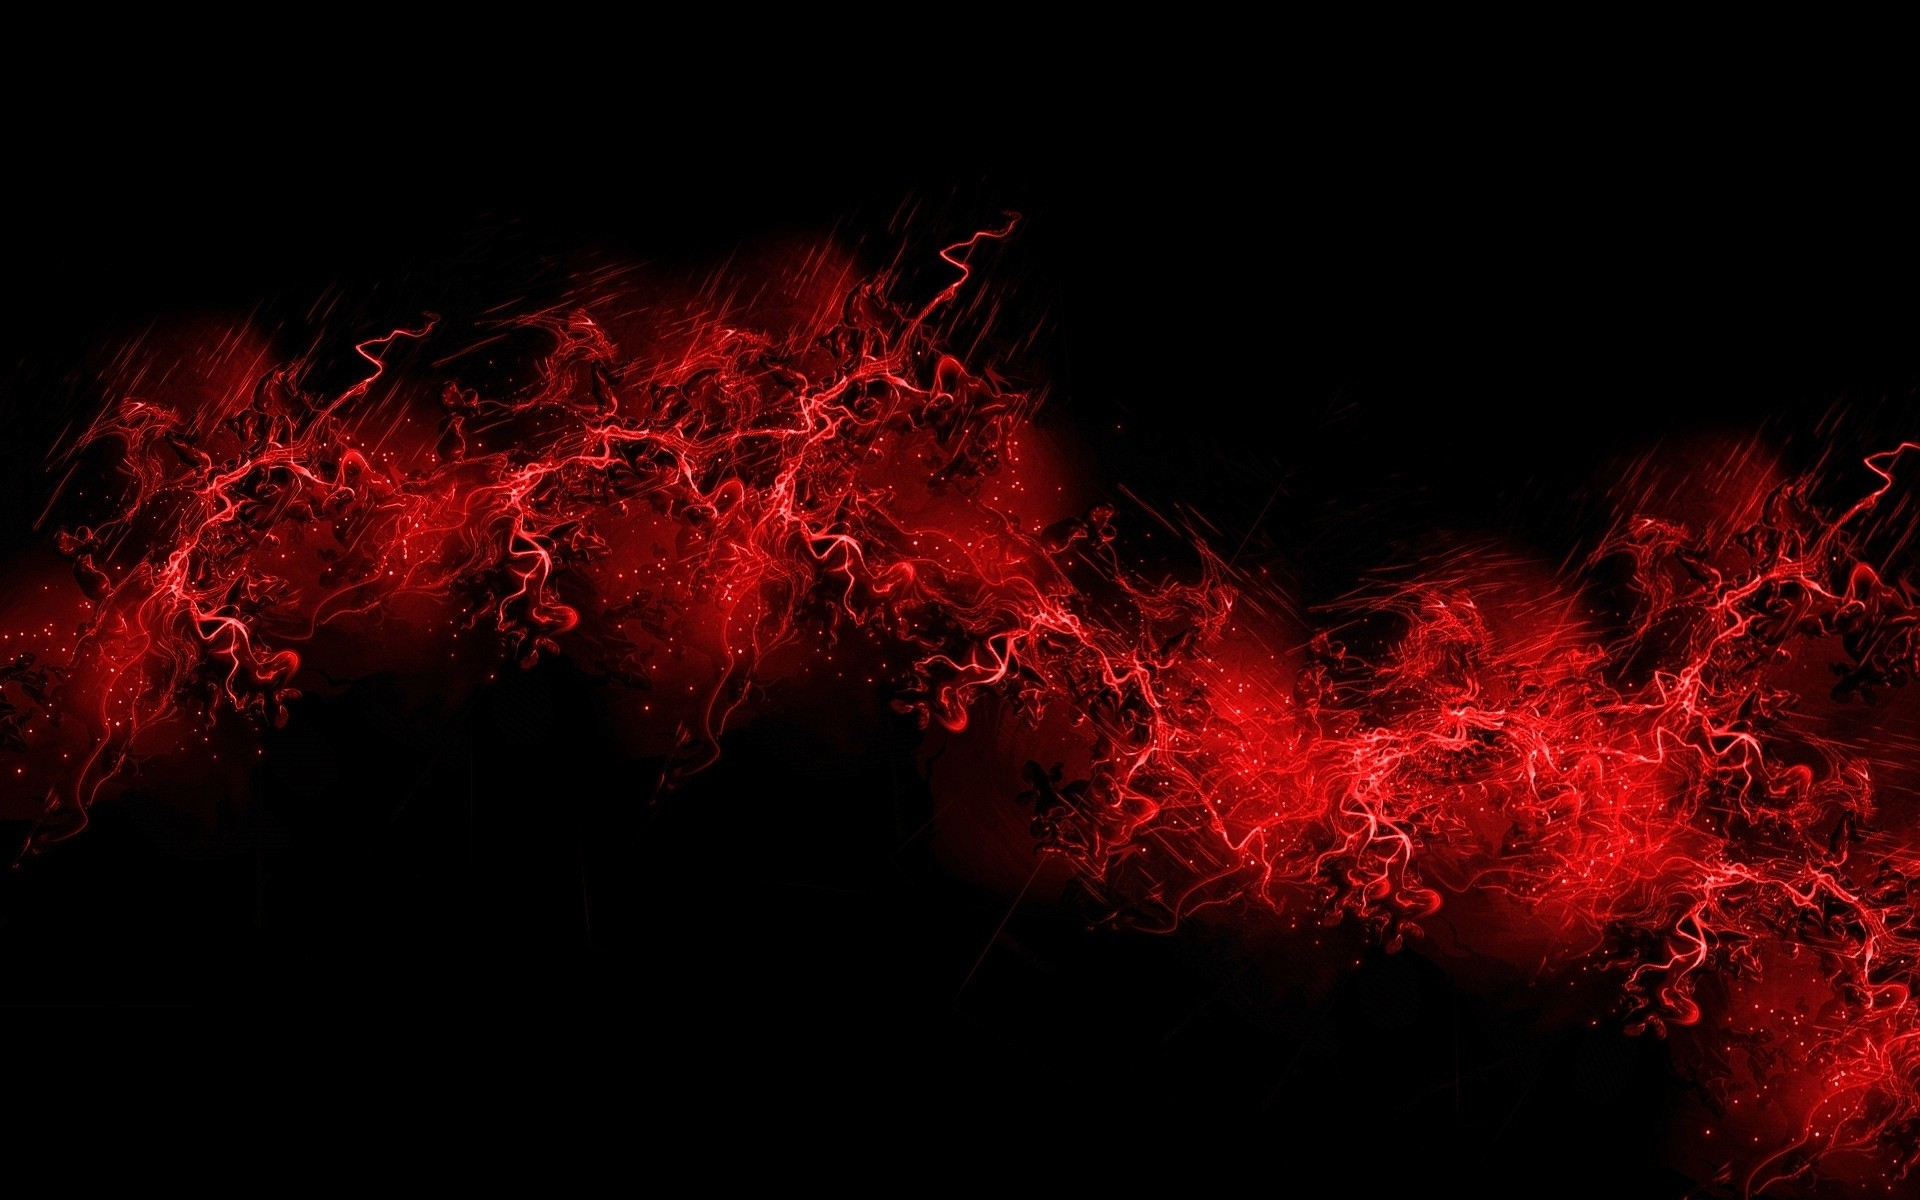 wallpaper red and black – Wallpapers